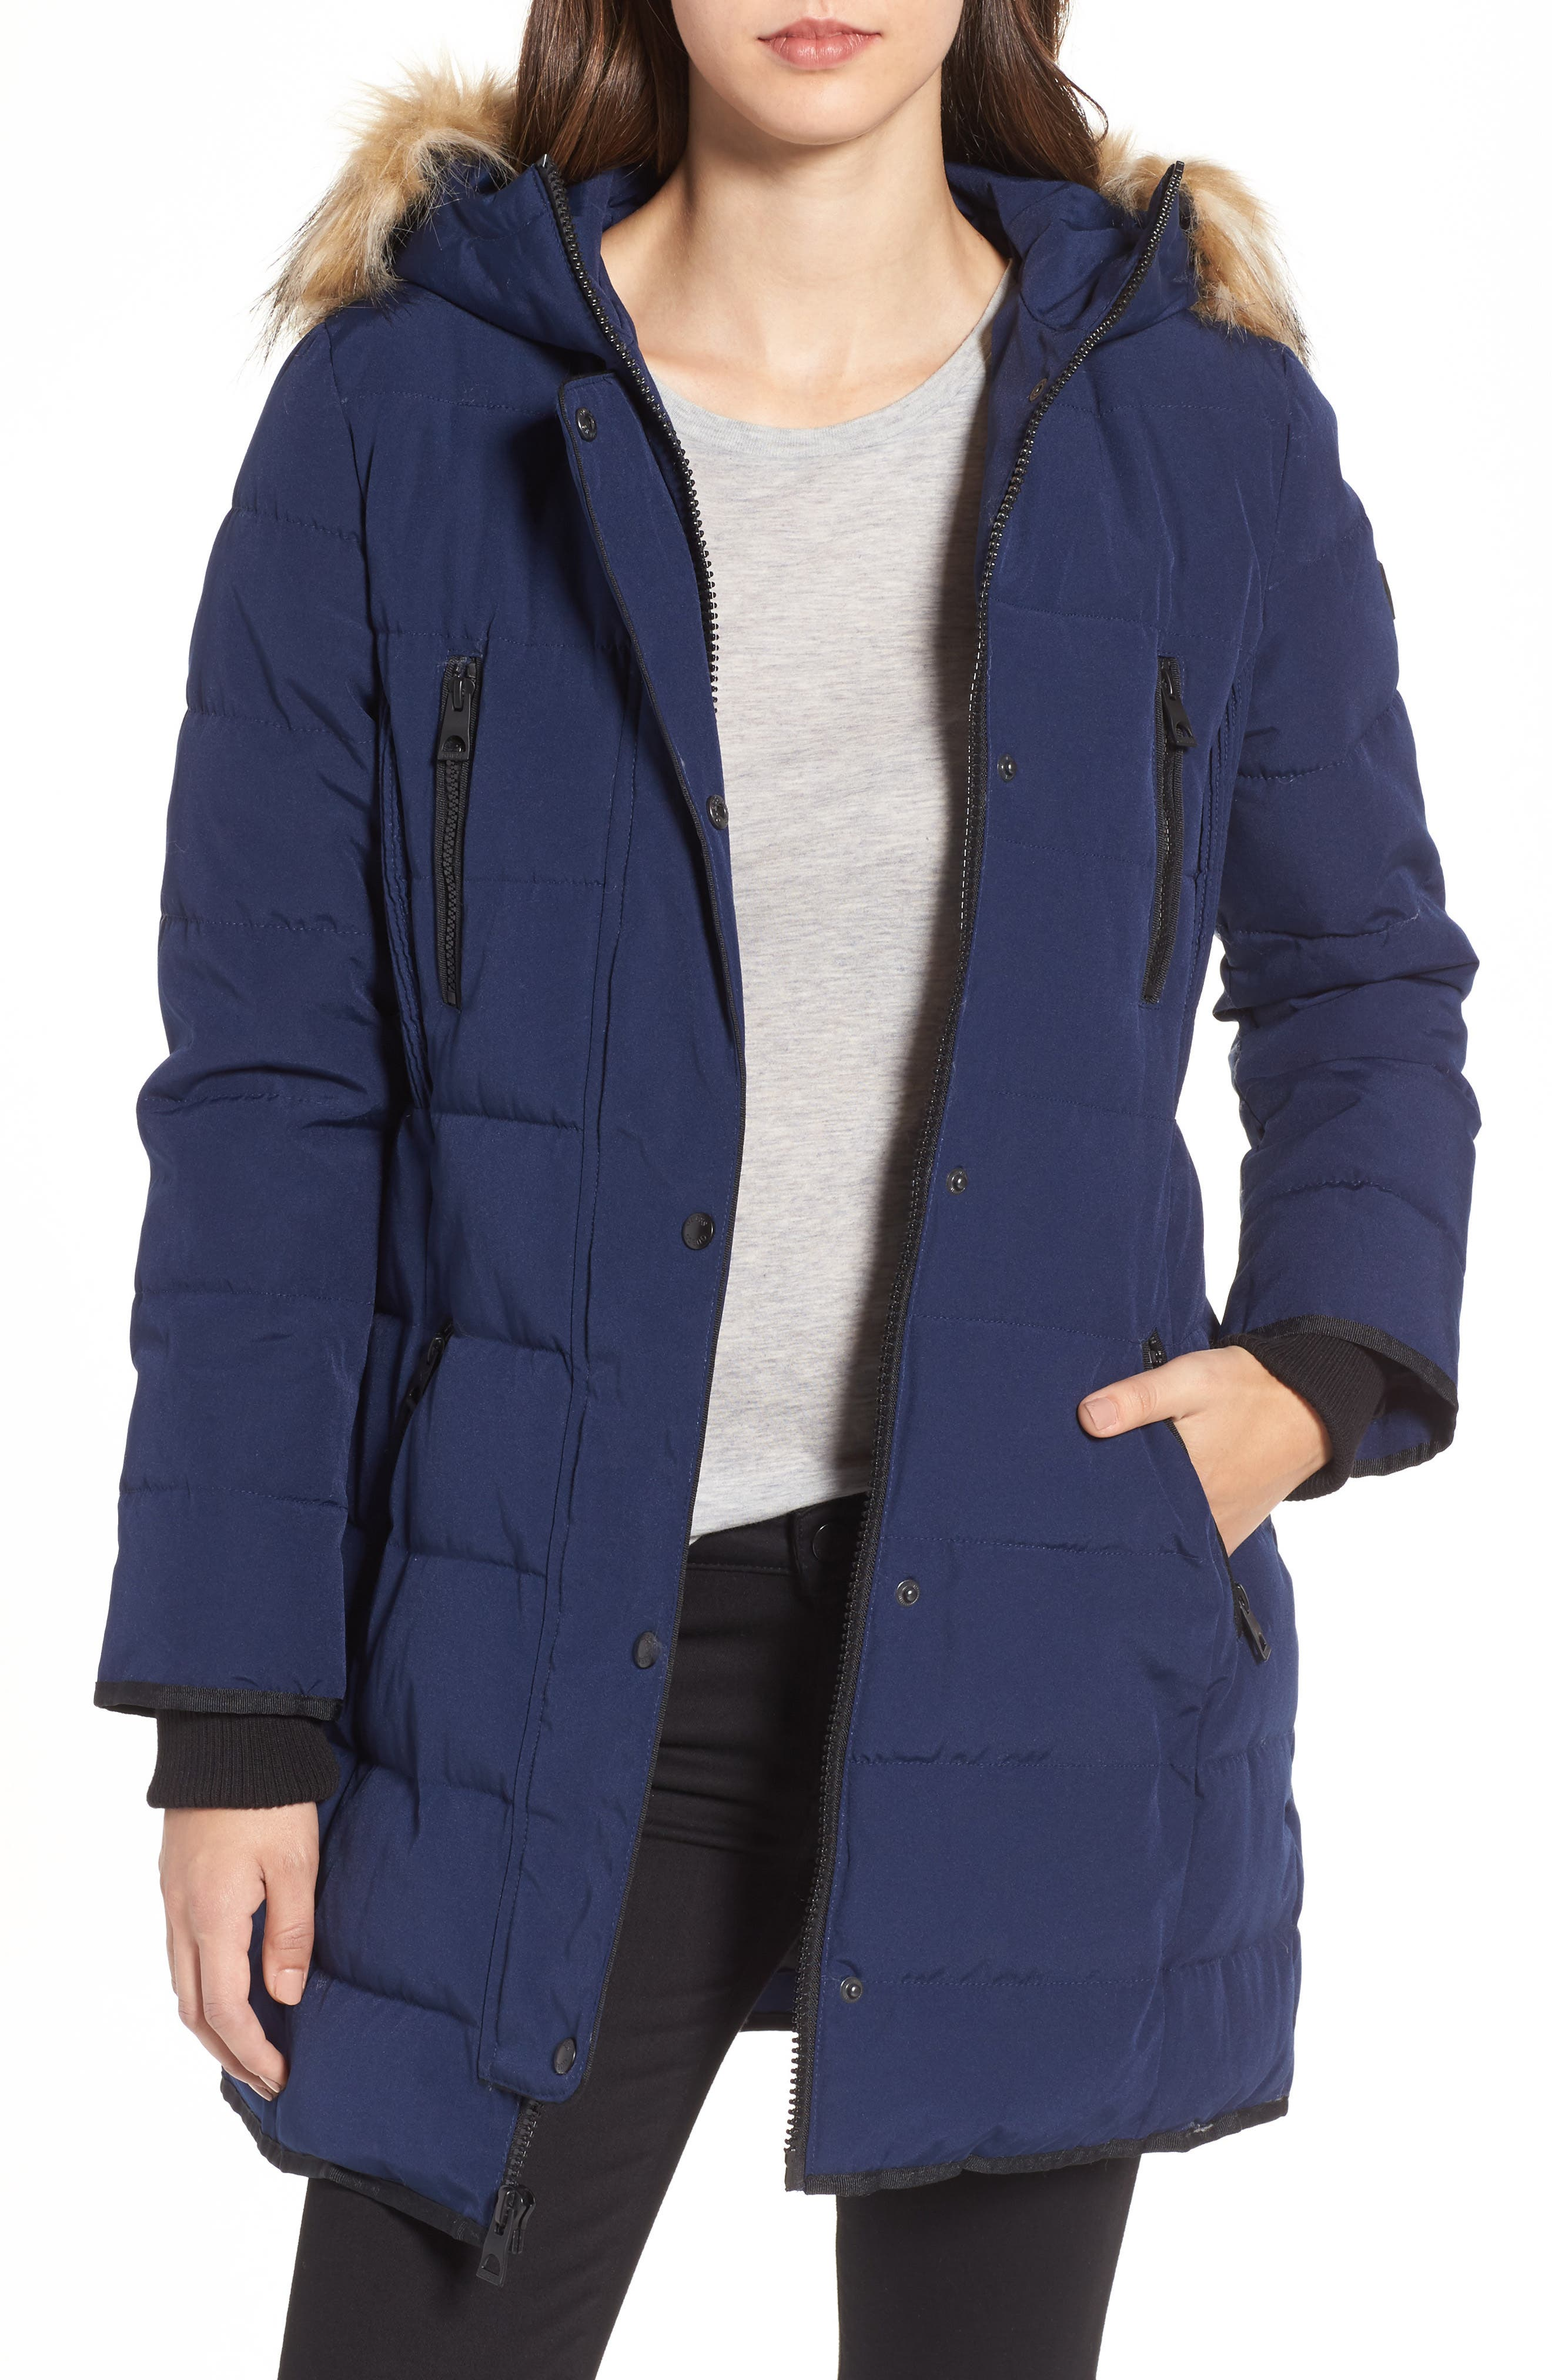 Hooded Jacket with Faux Fur Trim,                             Main thumbnail 1, color,                             Navy